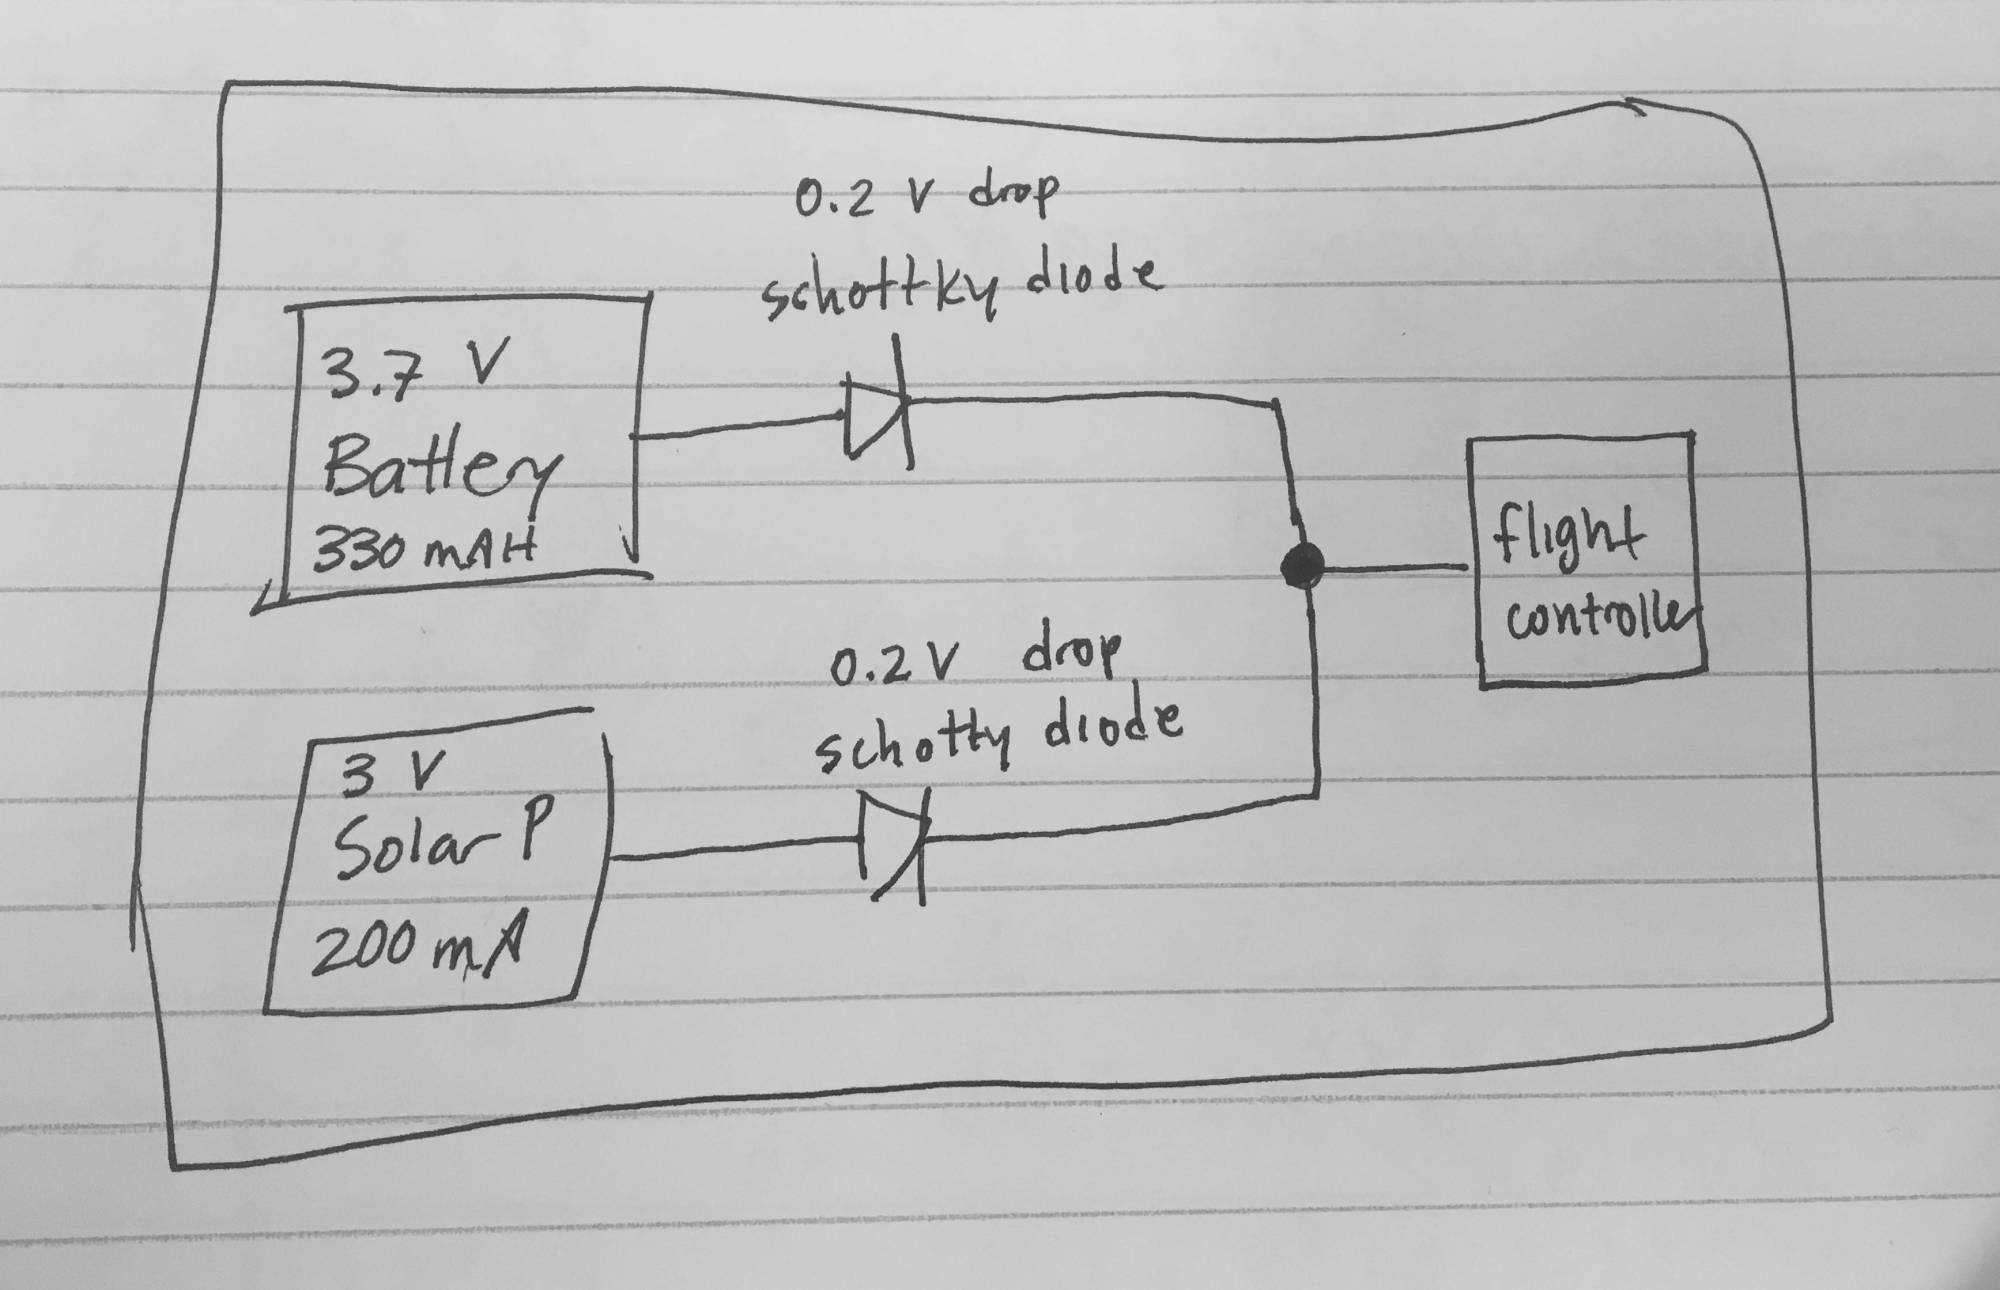 hight resolution of wiring battery and solar panel to drone to extend flight time schematic help